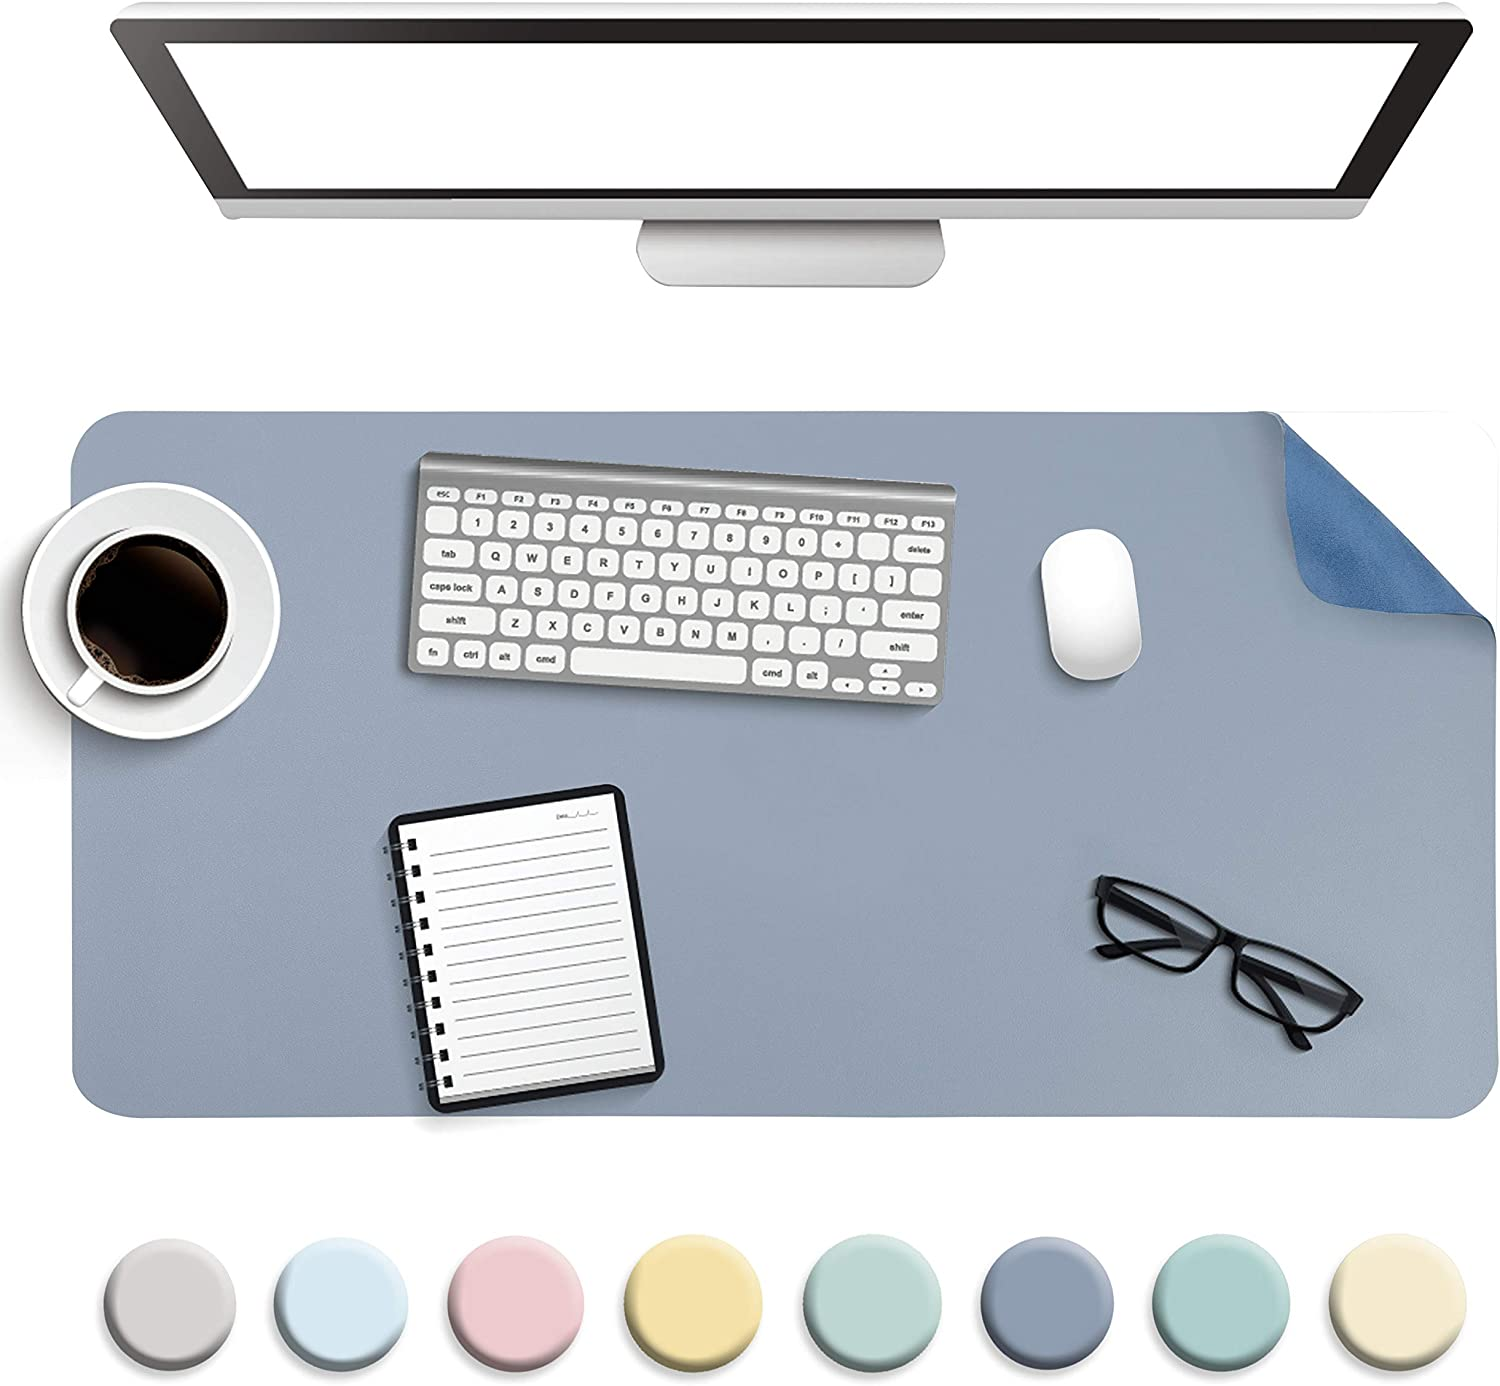 "Non-Slip Desk Pad, Waterproof PVC Leather Desk Table Protector, Ultra Thin Large Mouse Pad, Easy Clean Laptop Desk Writing Mat for Office Work/Home/Decor (Blue, 31.5"" x 15.7"")"